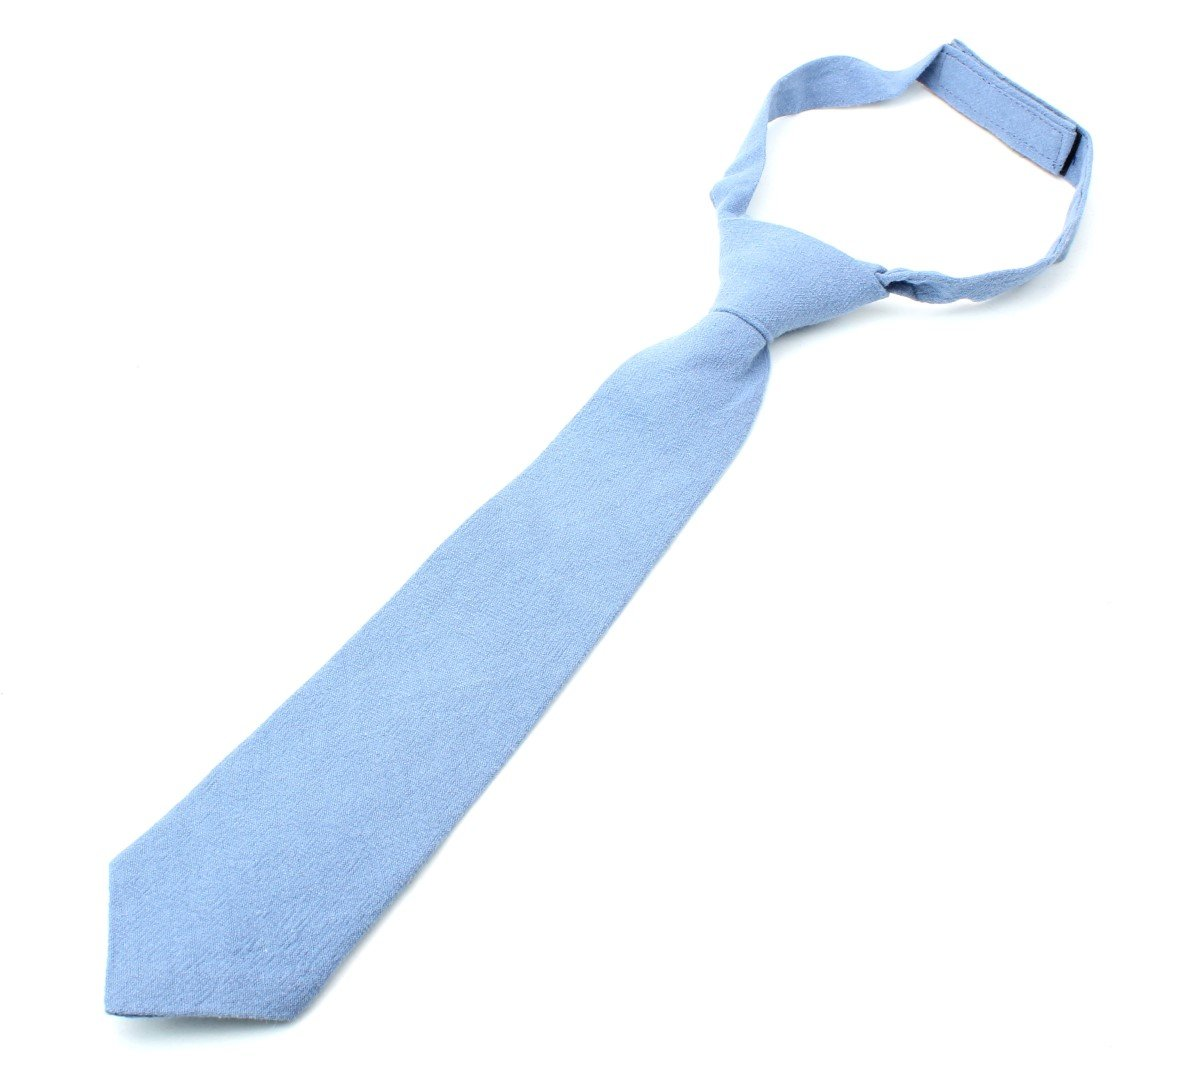 Kids Linen Formal Necktie Tie Modern Distressed Finish Solid Colors - Light Blue